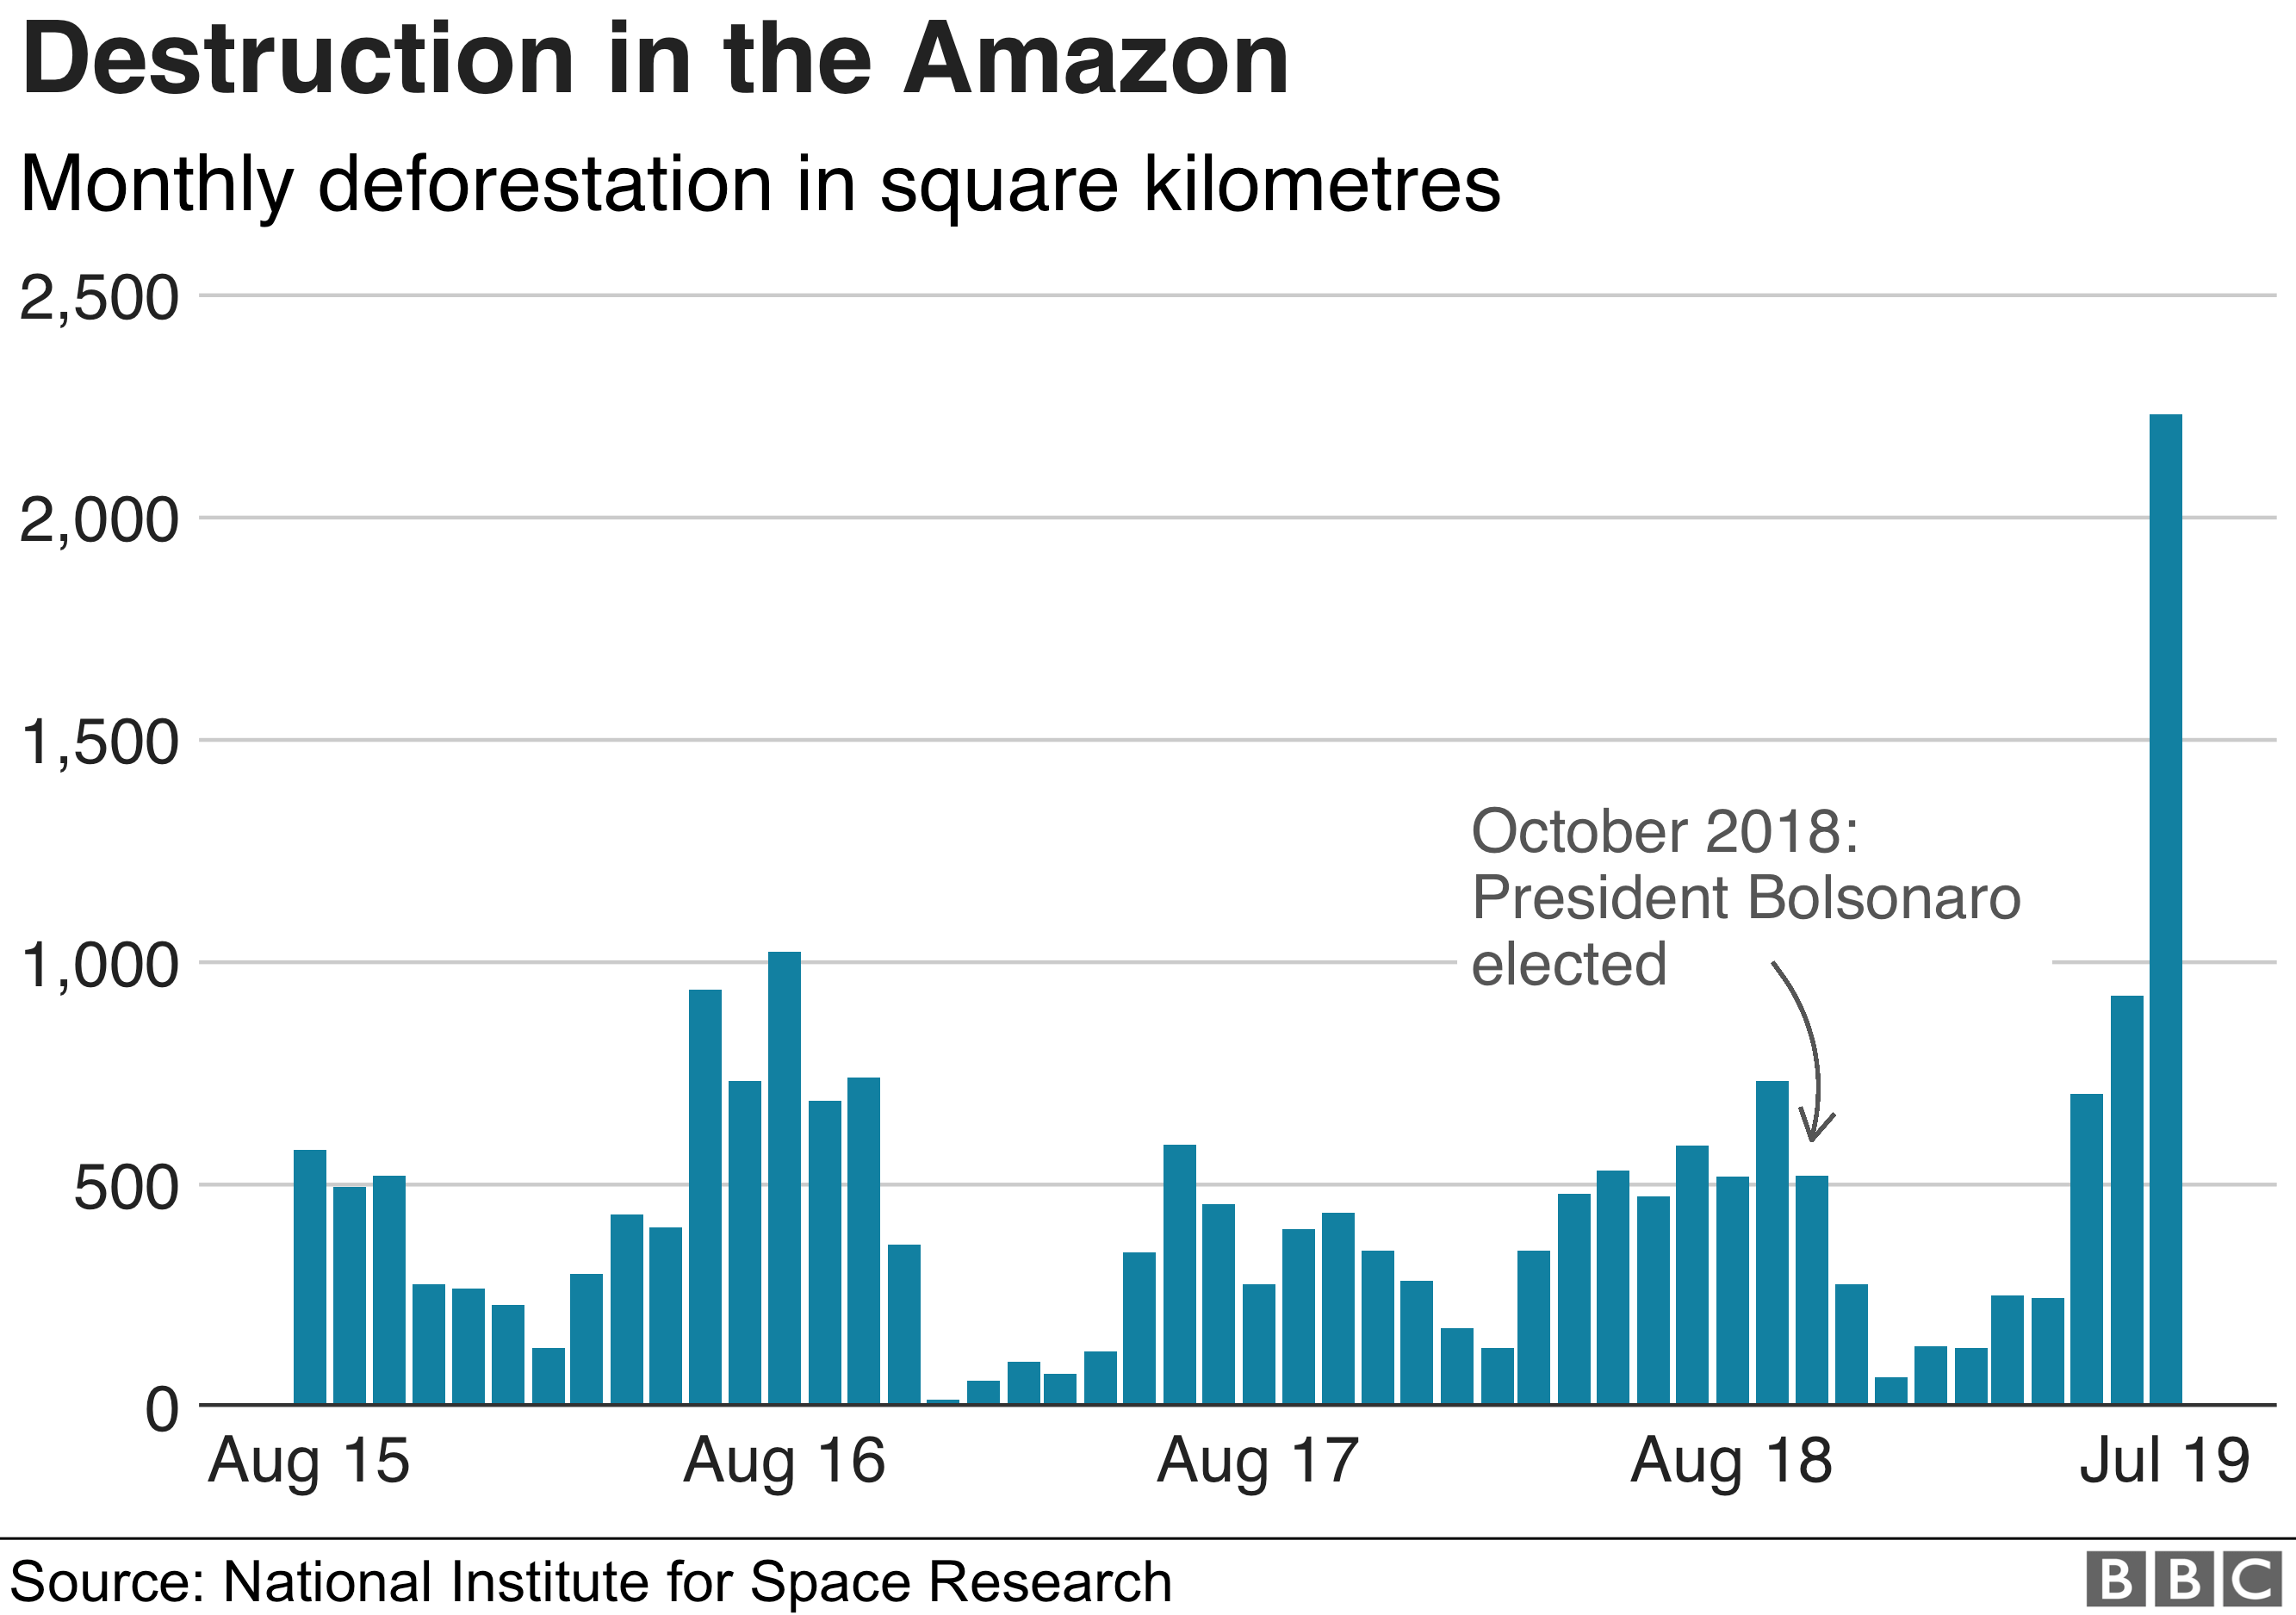 Chart showing monthly deforestation data